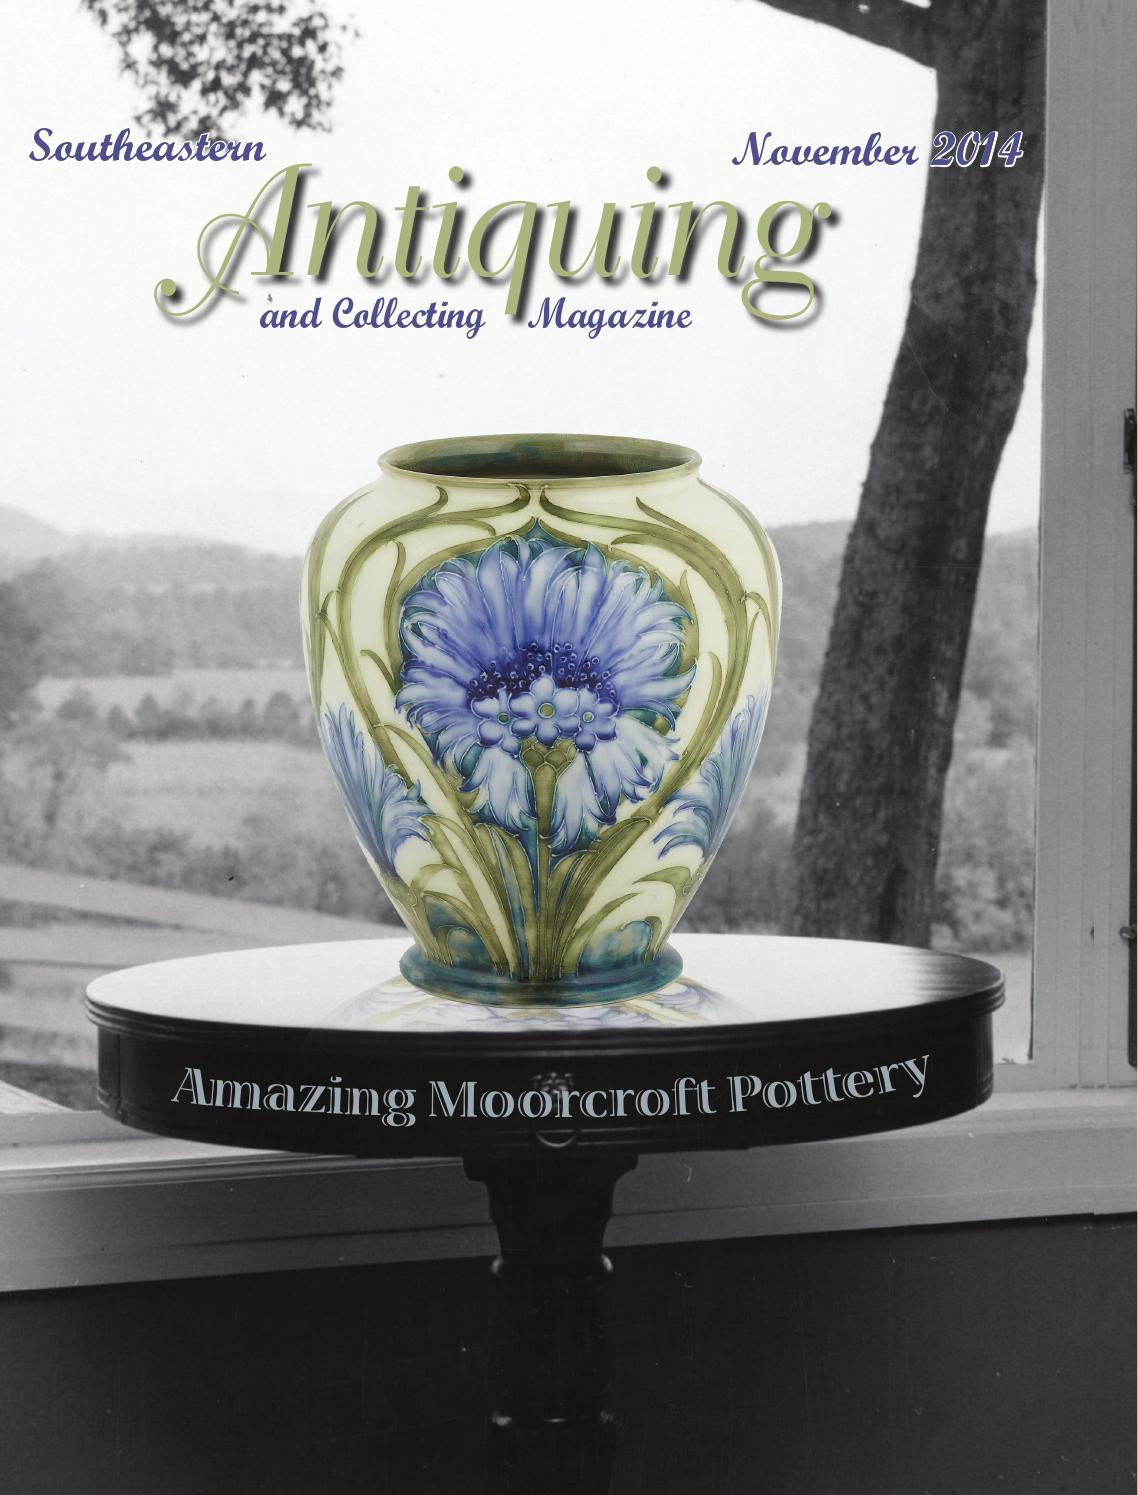 Roseville Pottery Magnolia Vase Of southeastern Antiquing and Collecting Magazine November 2014 by Intended for southeastern Antiquing and Collecting Magazine November 2014 by southeastern Antiquing and Collecting Magazine issuu